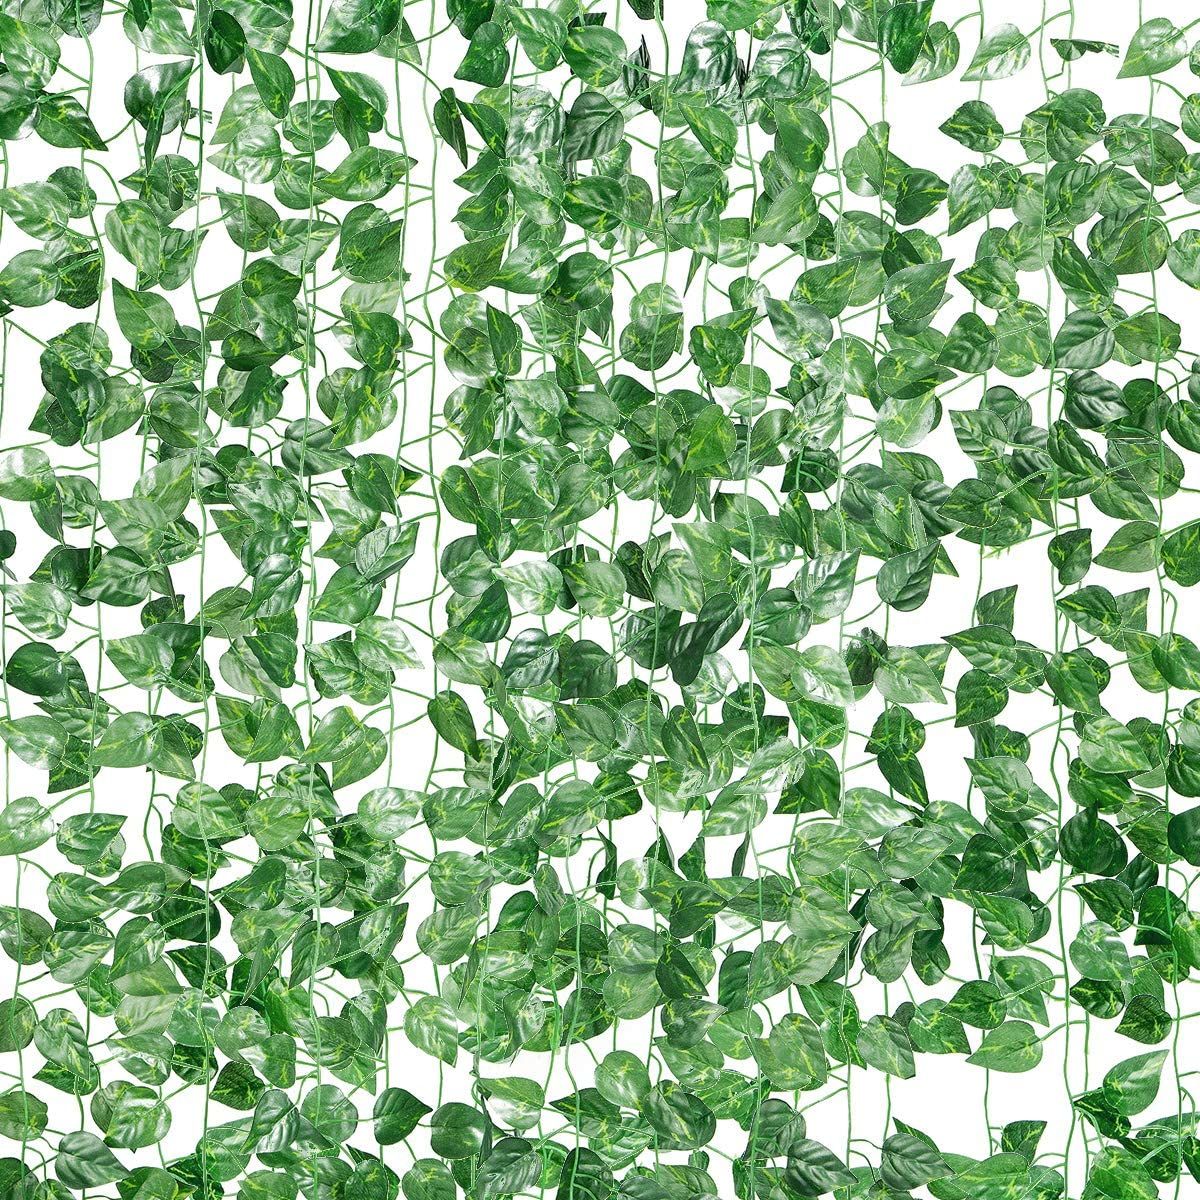 LuLuHouse 78Ft 12 Strands Artificial Ivy Leaf Plants Greenery Hanging Vines for Home Room Garden Office Wedding Wall Decor (Scindapsus)